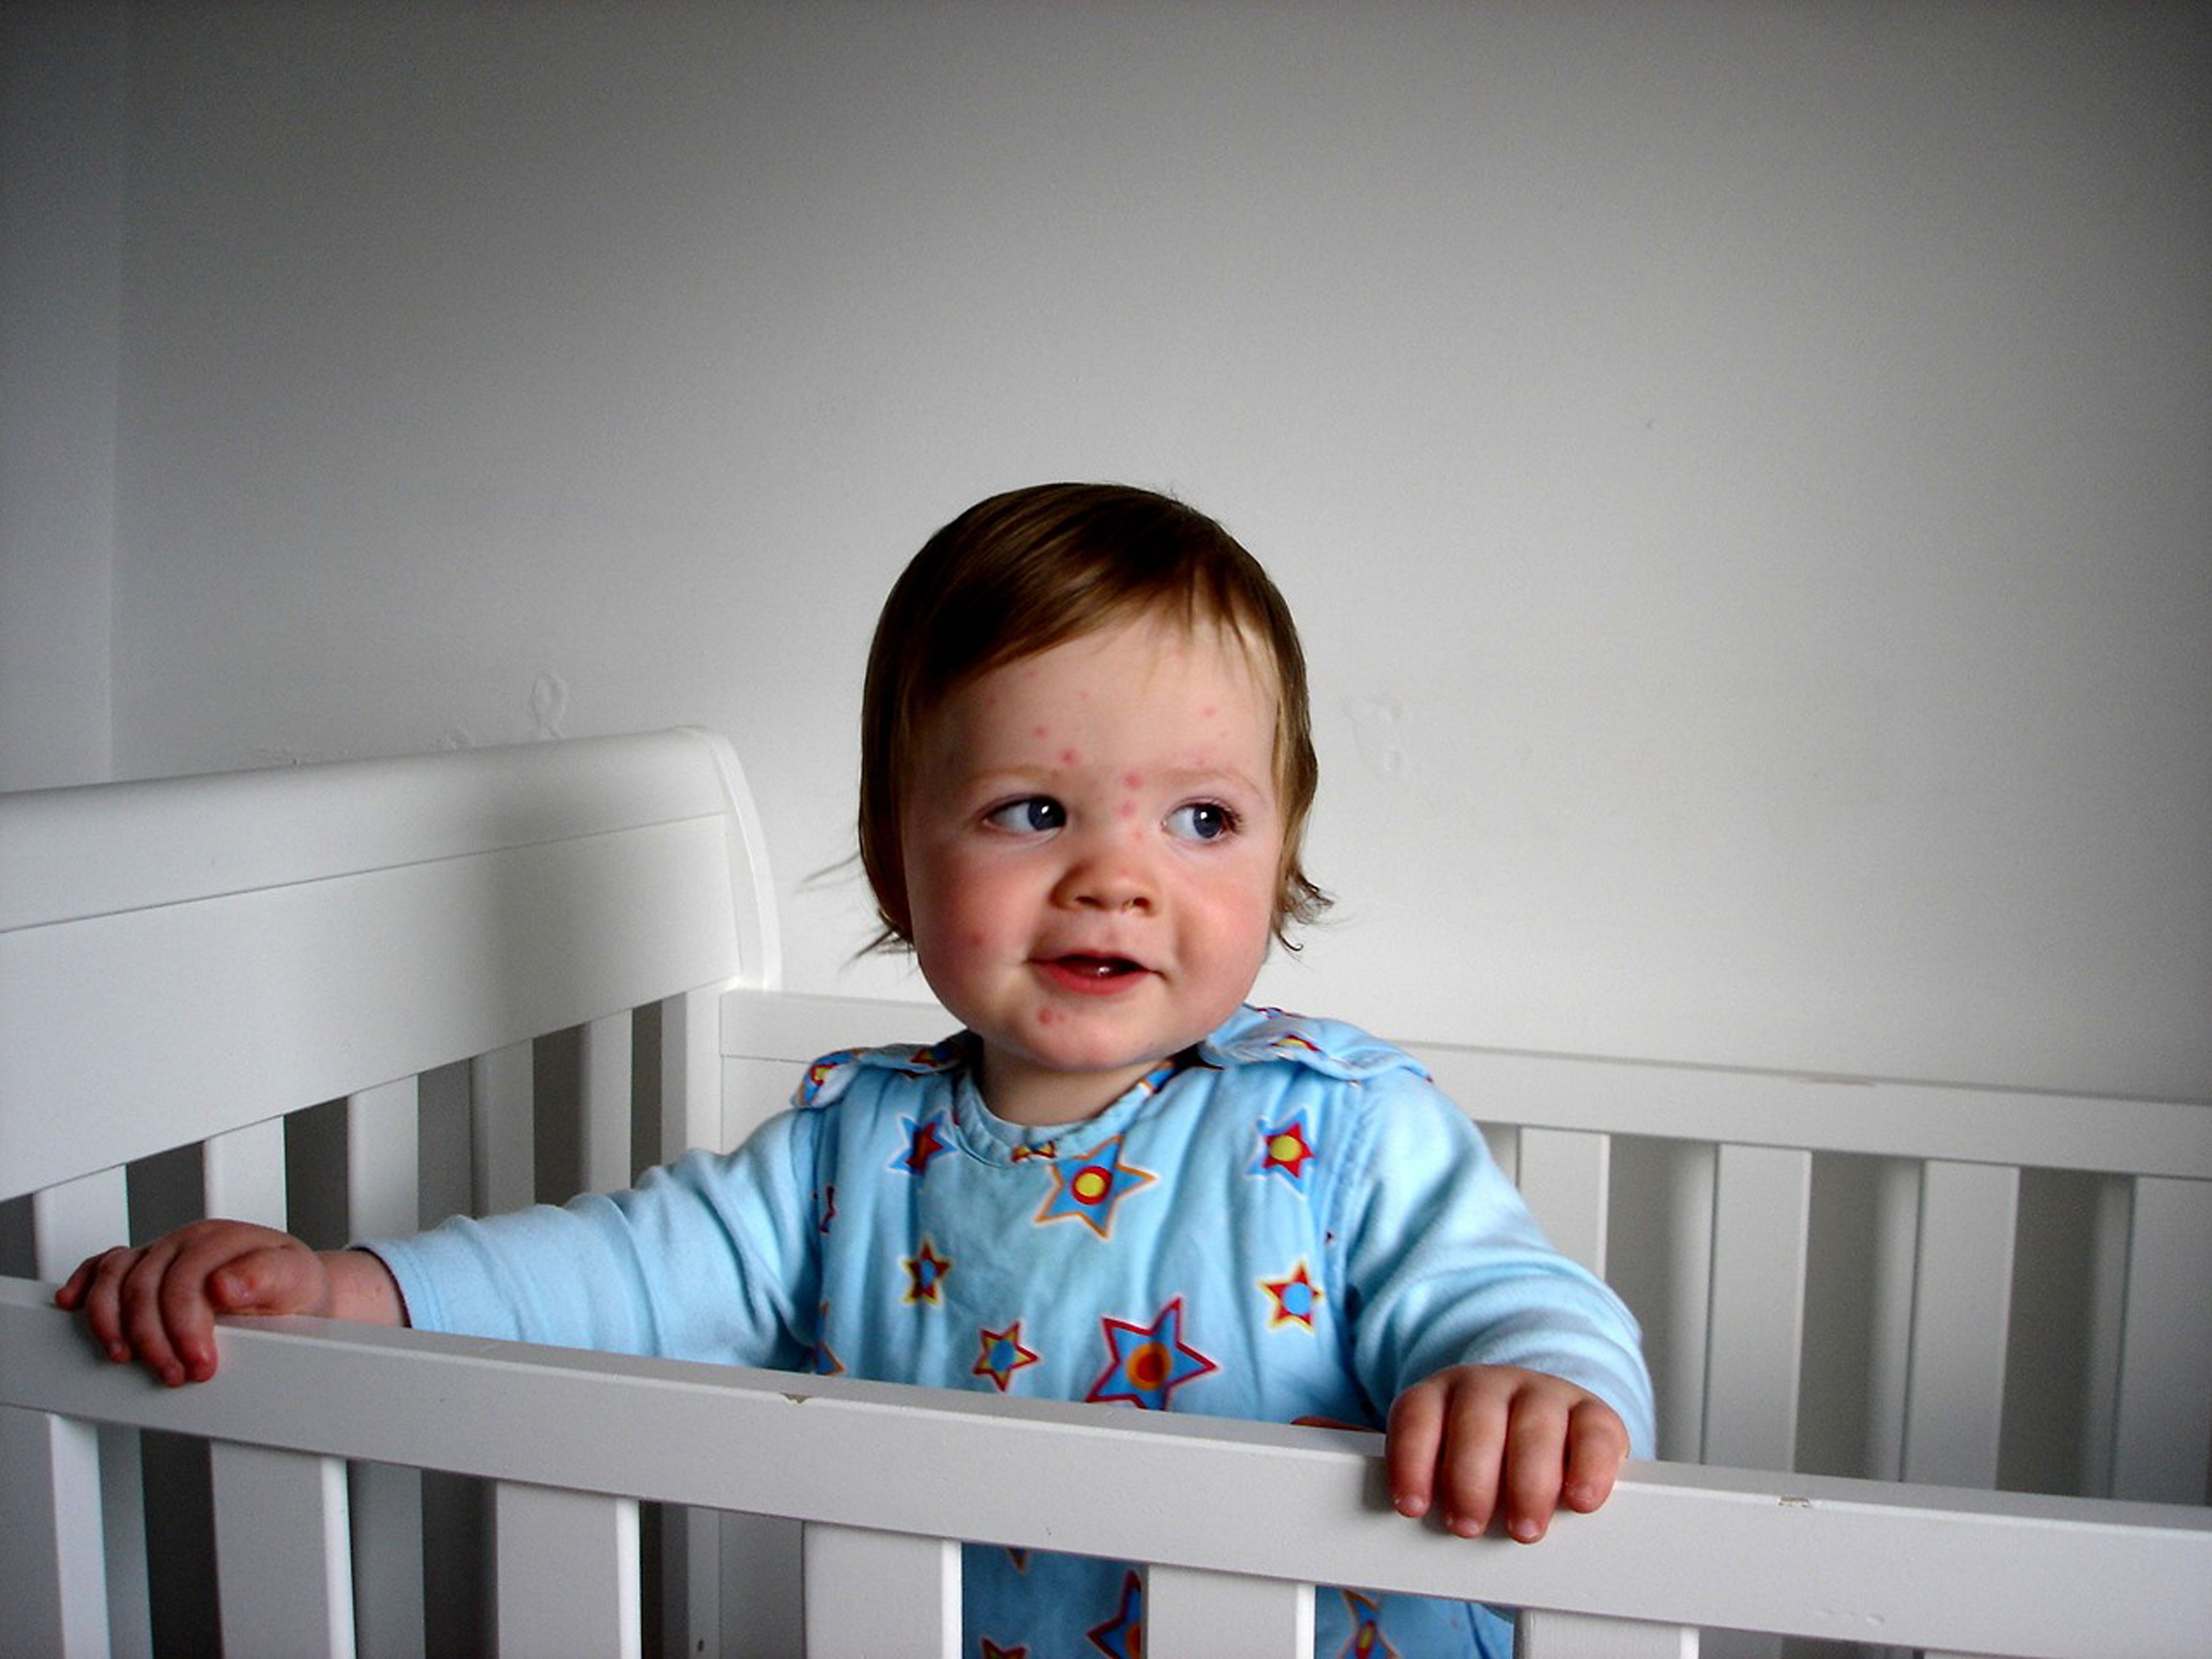 Toddler with acne inside of crib